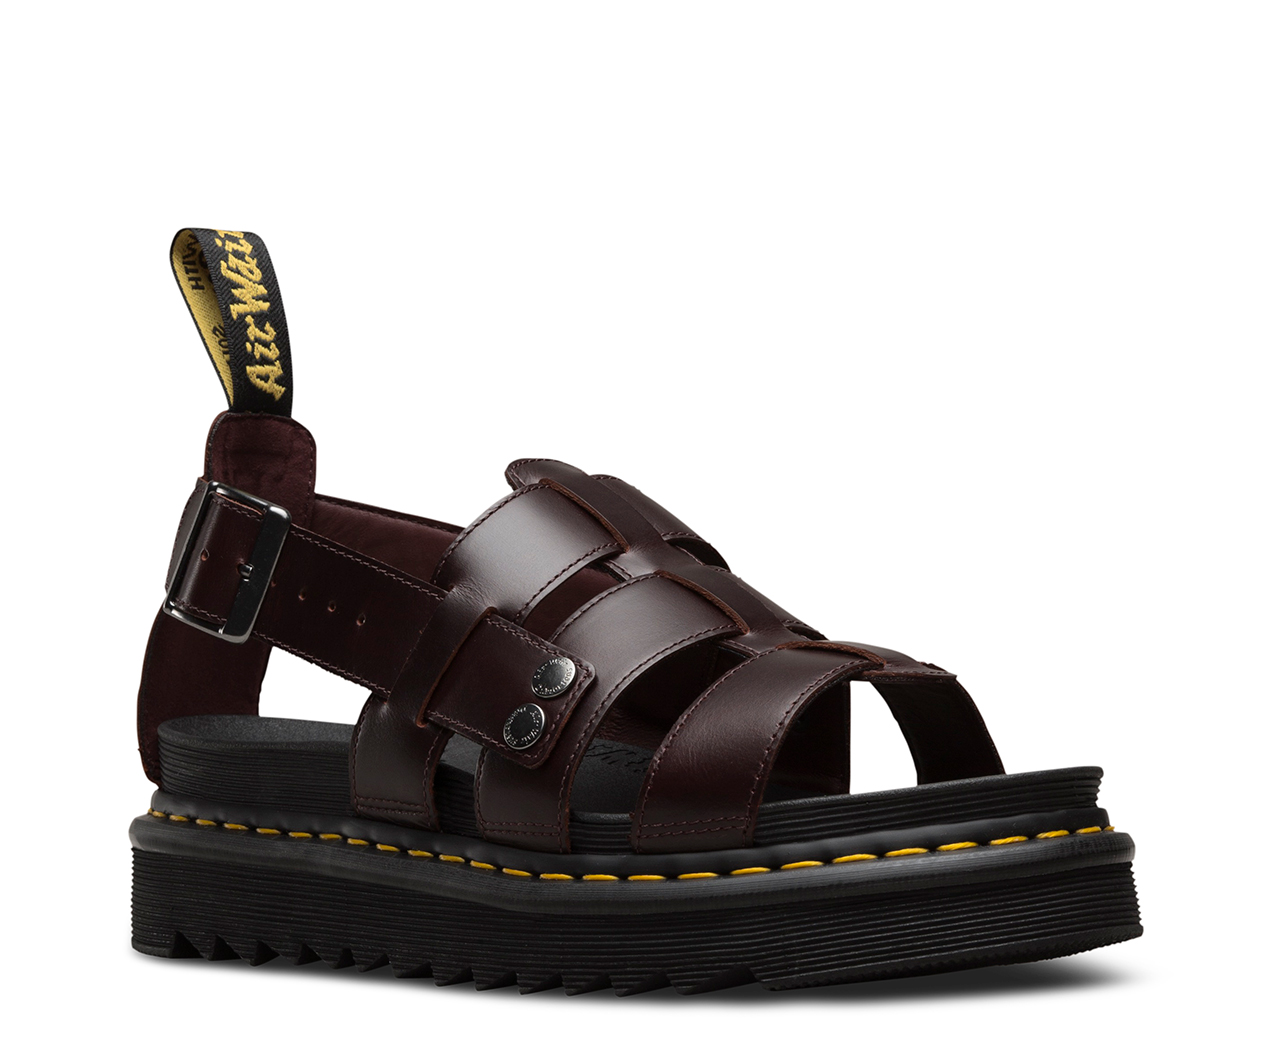 Women's Dr. Martens Heavy Duty Leather Sandals  Size 6